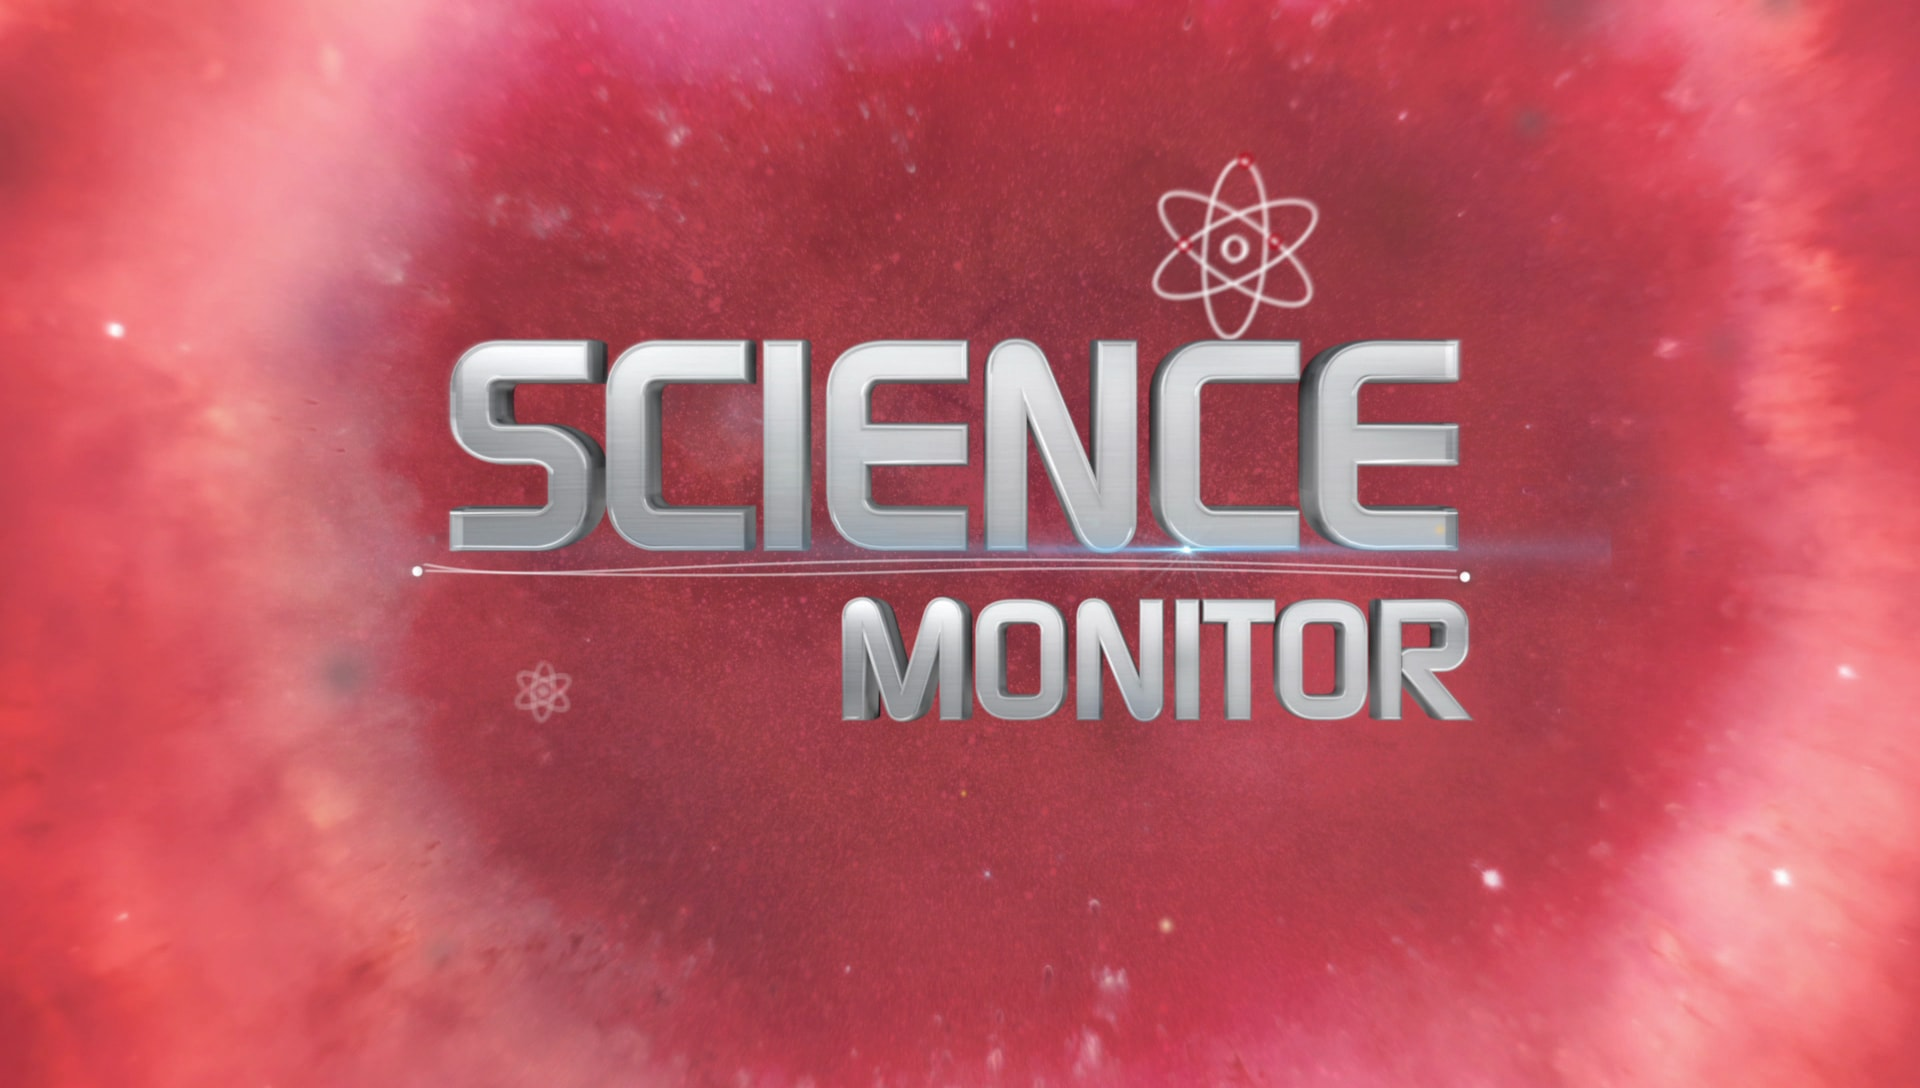 sciene-monitor-title